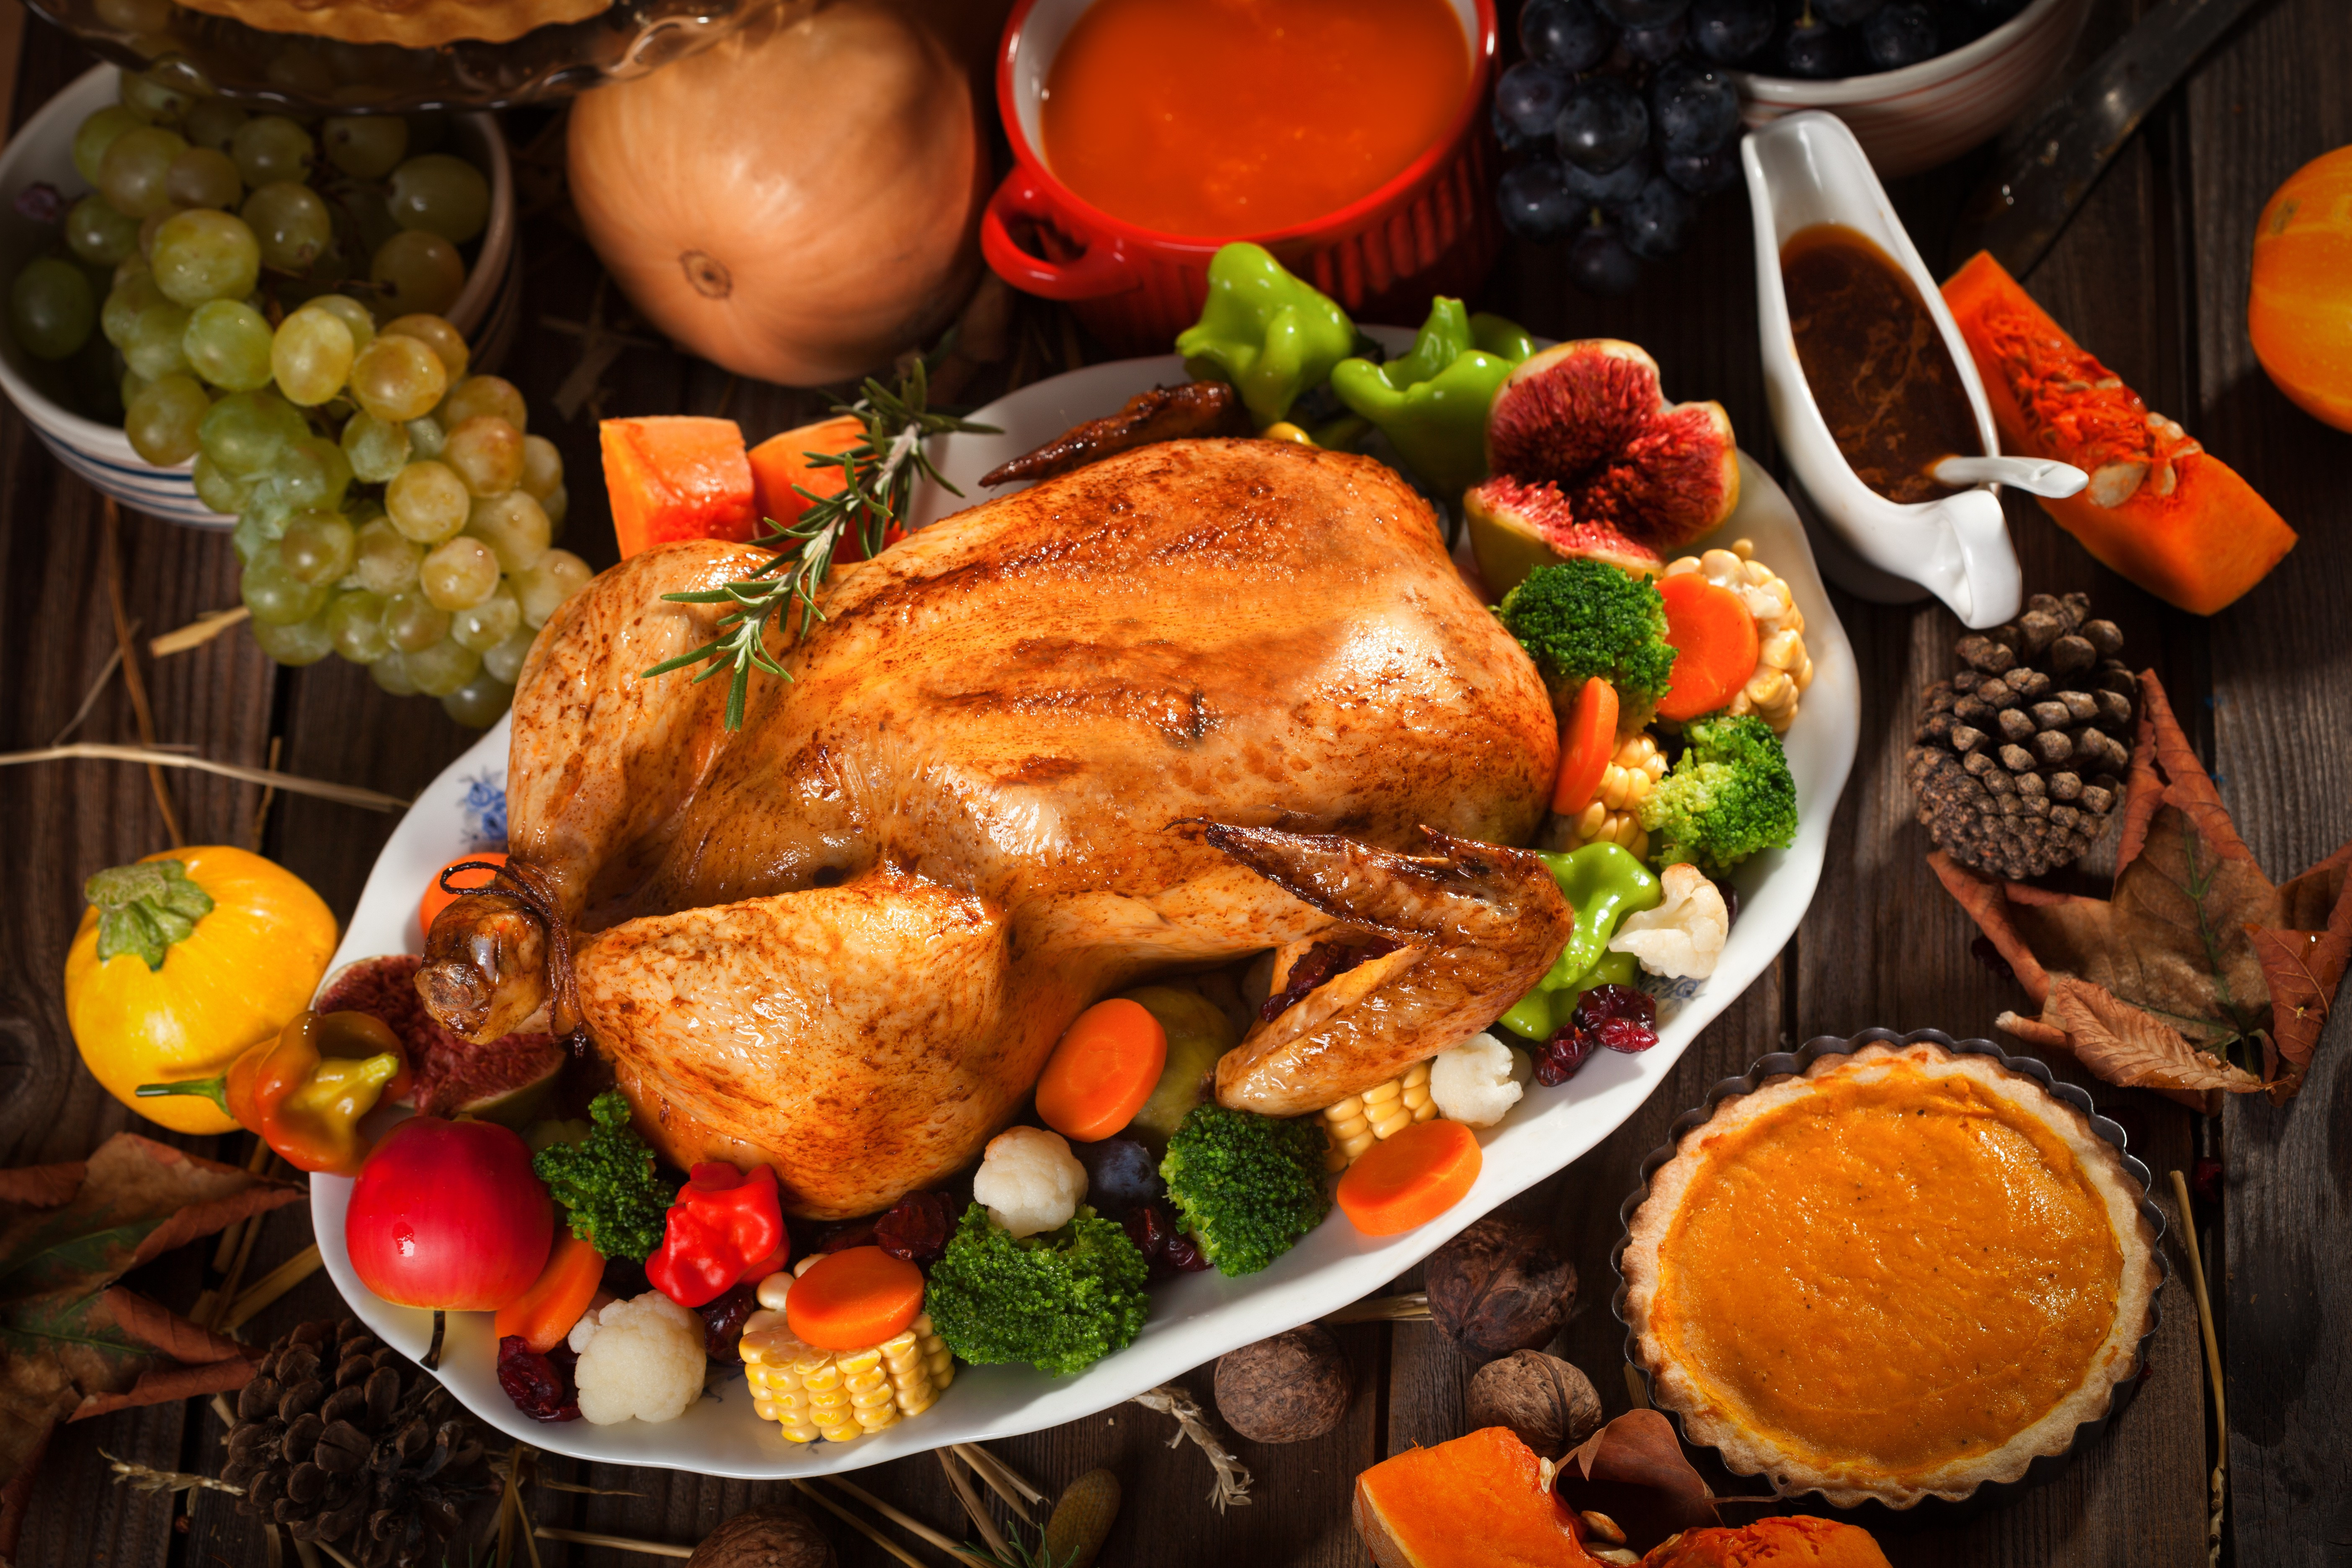 Typical Thanksgiving Dinner  How to Avoid a Holiday Disaster Thanksgiving 911